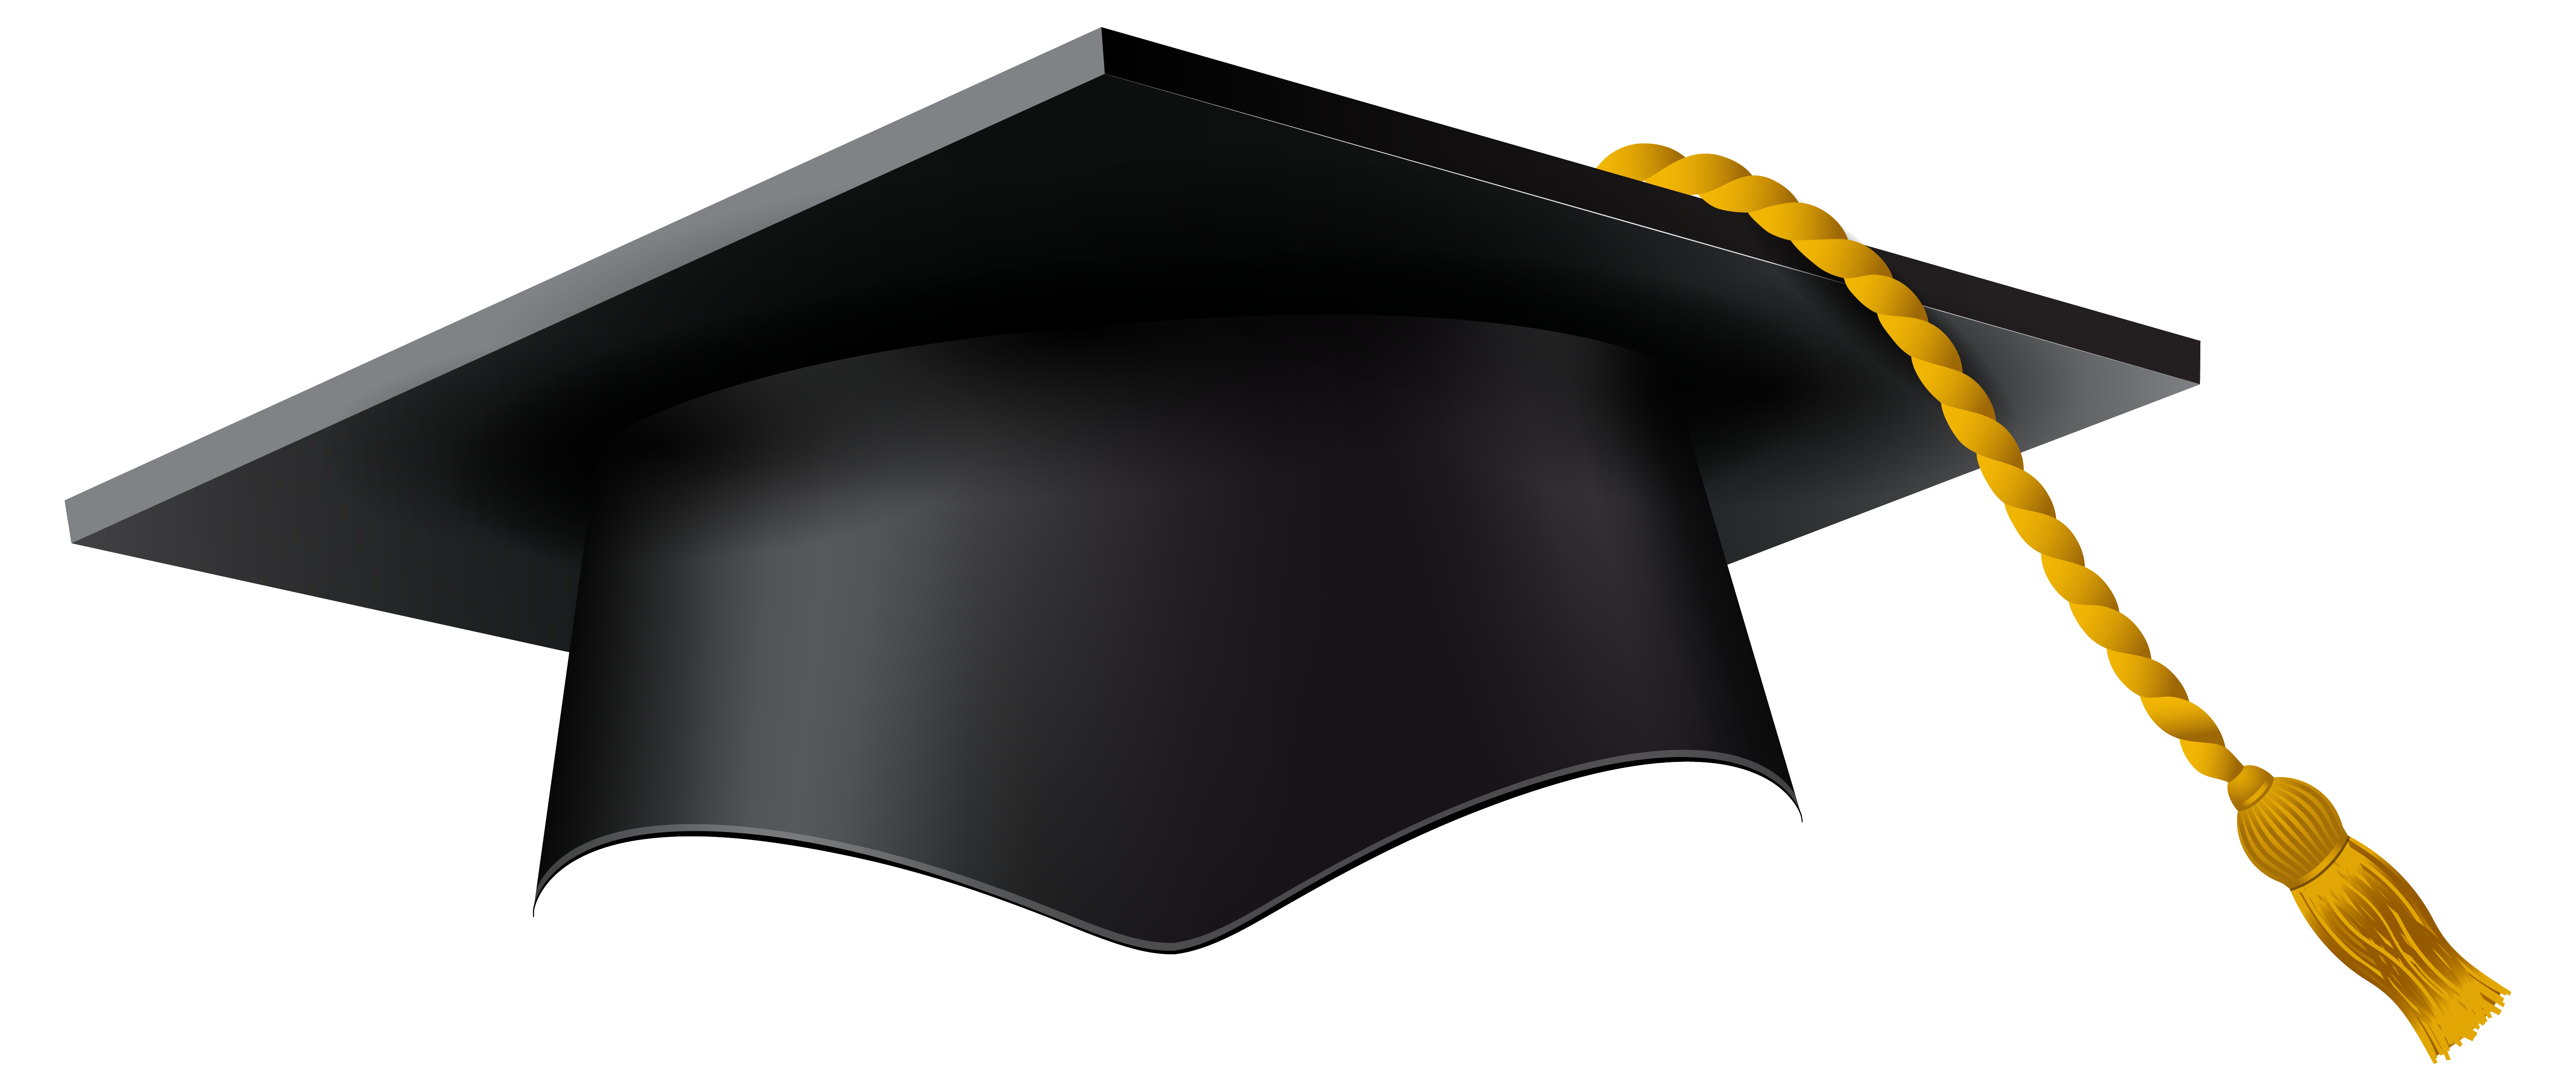 Graduation png frame. Cap image gallery yopriceville